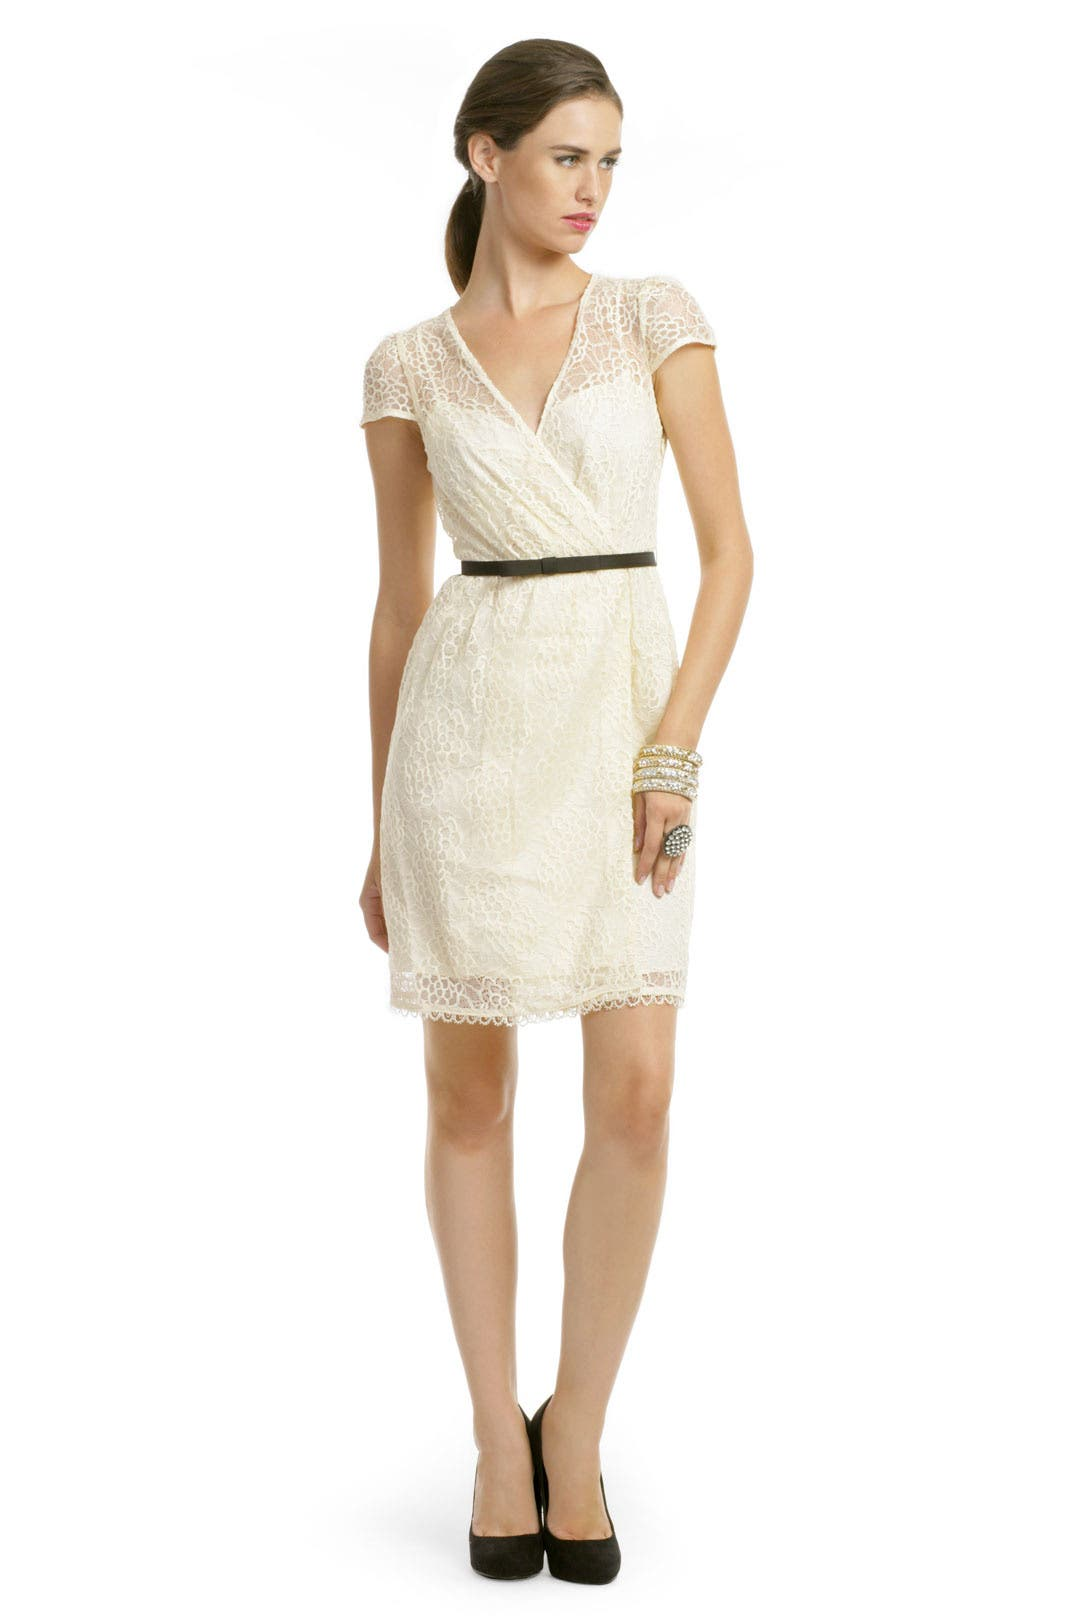 Ivory lace flutter dress by milly for 53 rent the runway for Renting a wedding dress